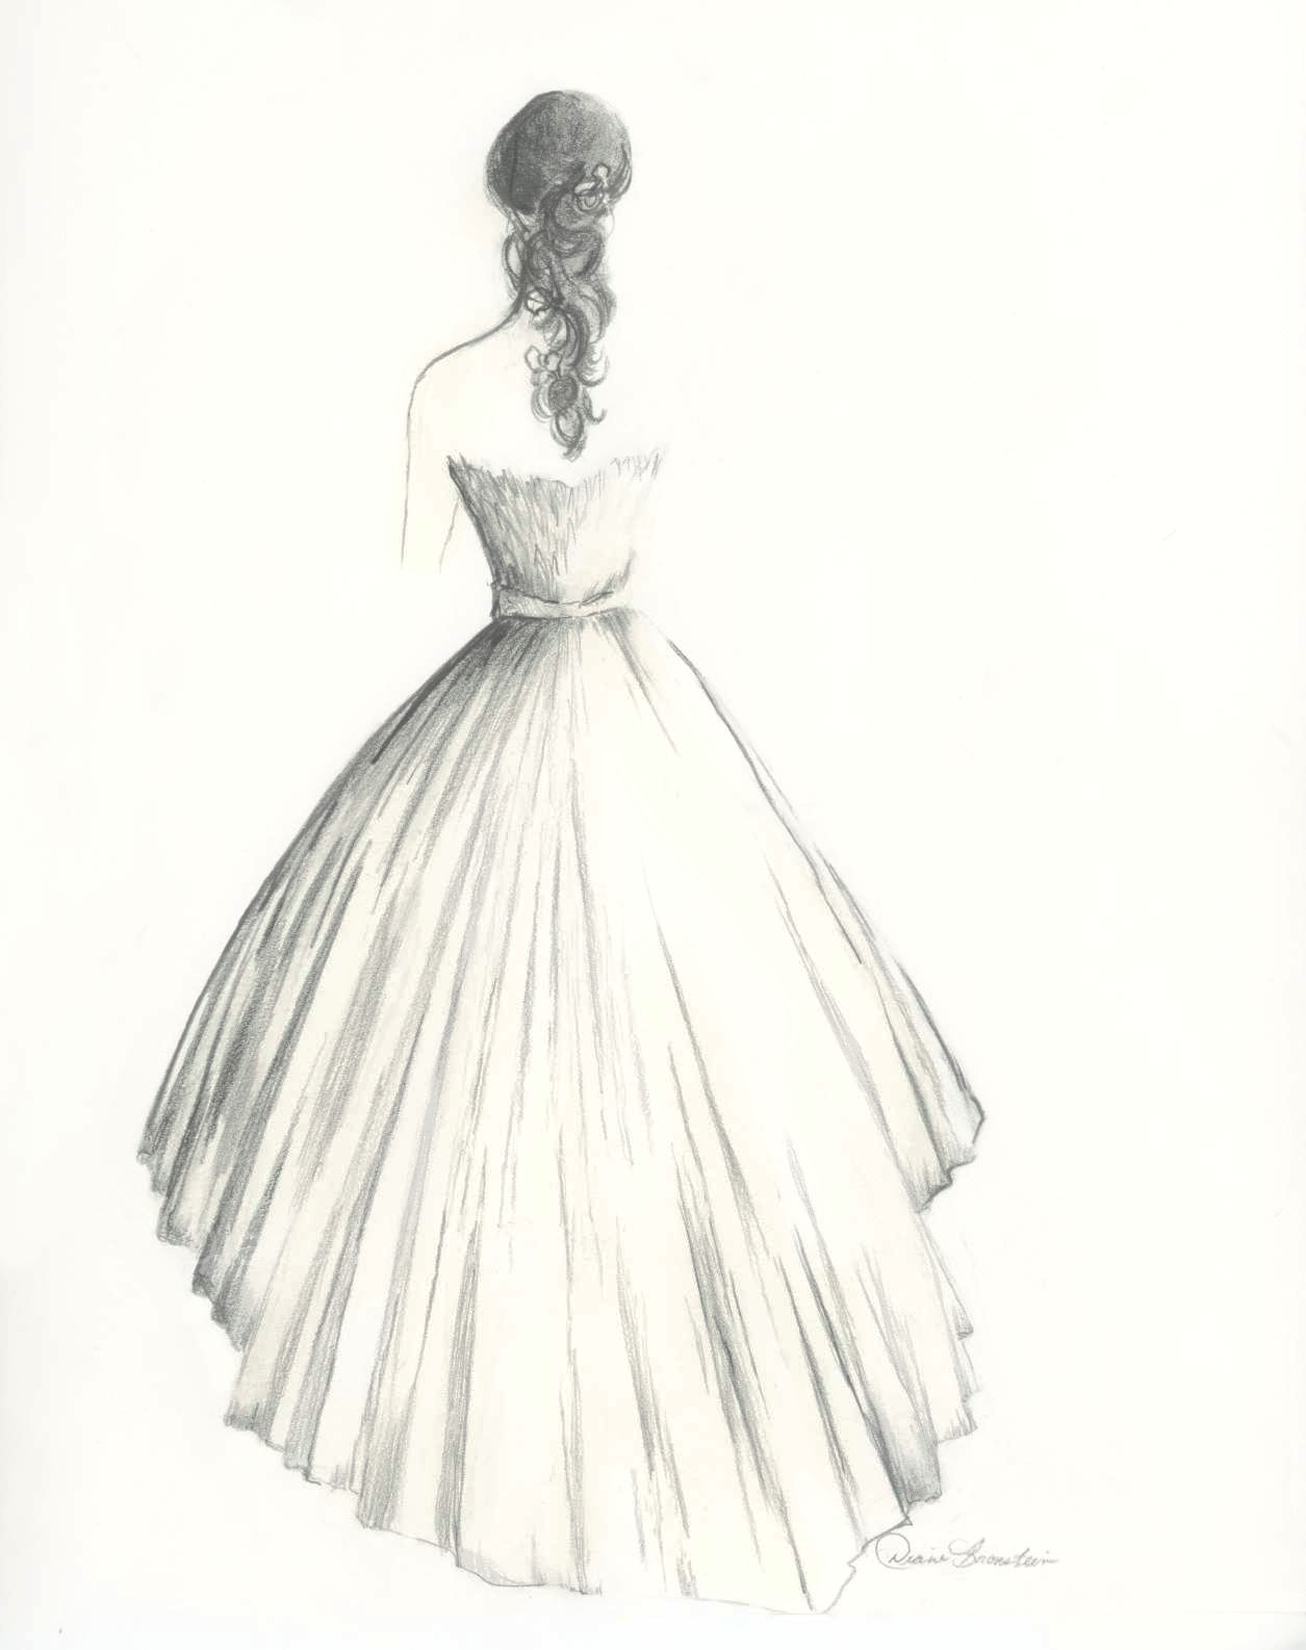 Drawn women Bronstein a Wedding dress Perfect